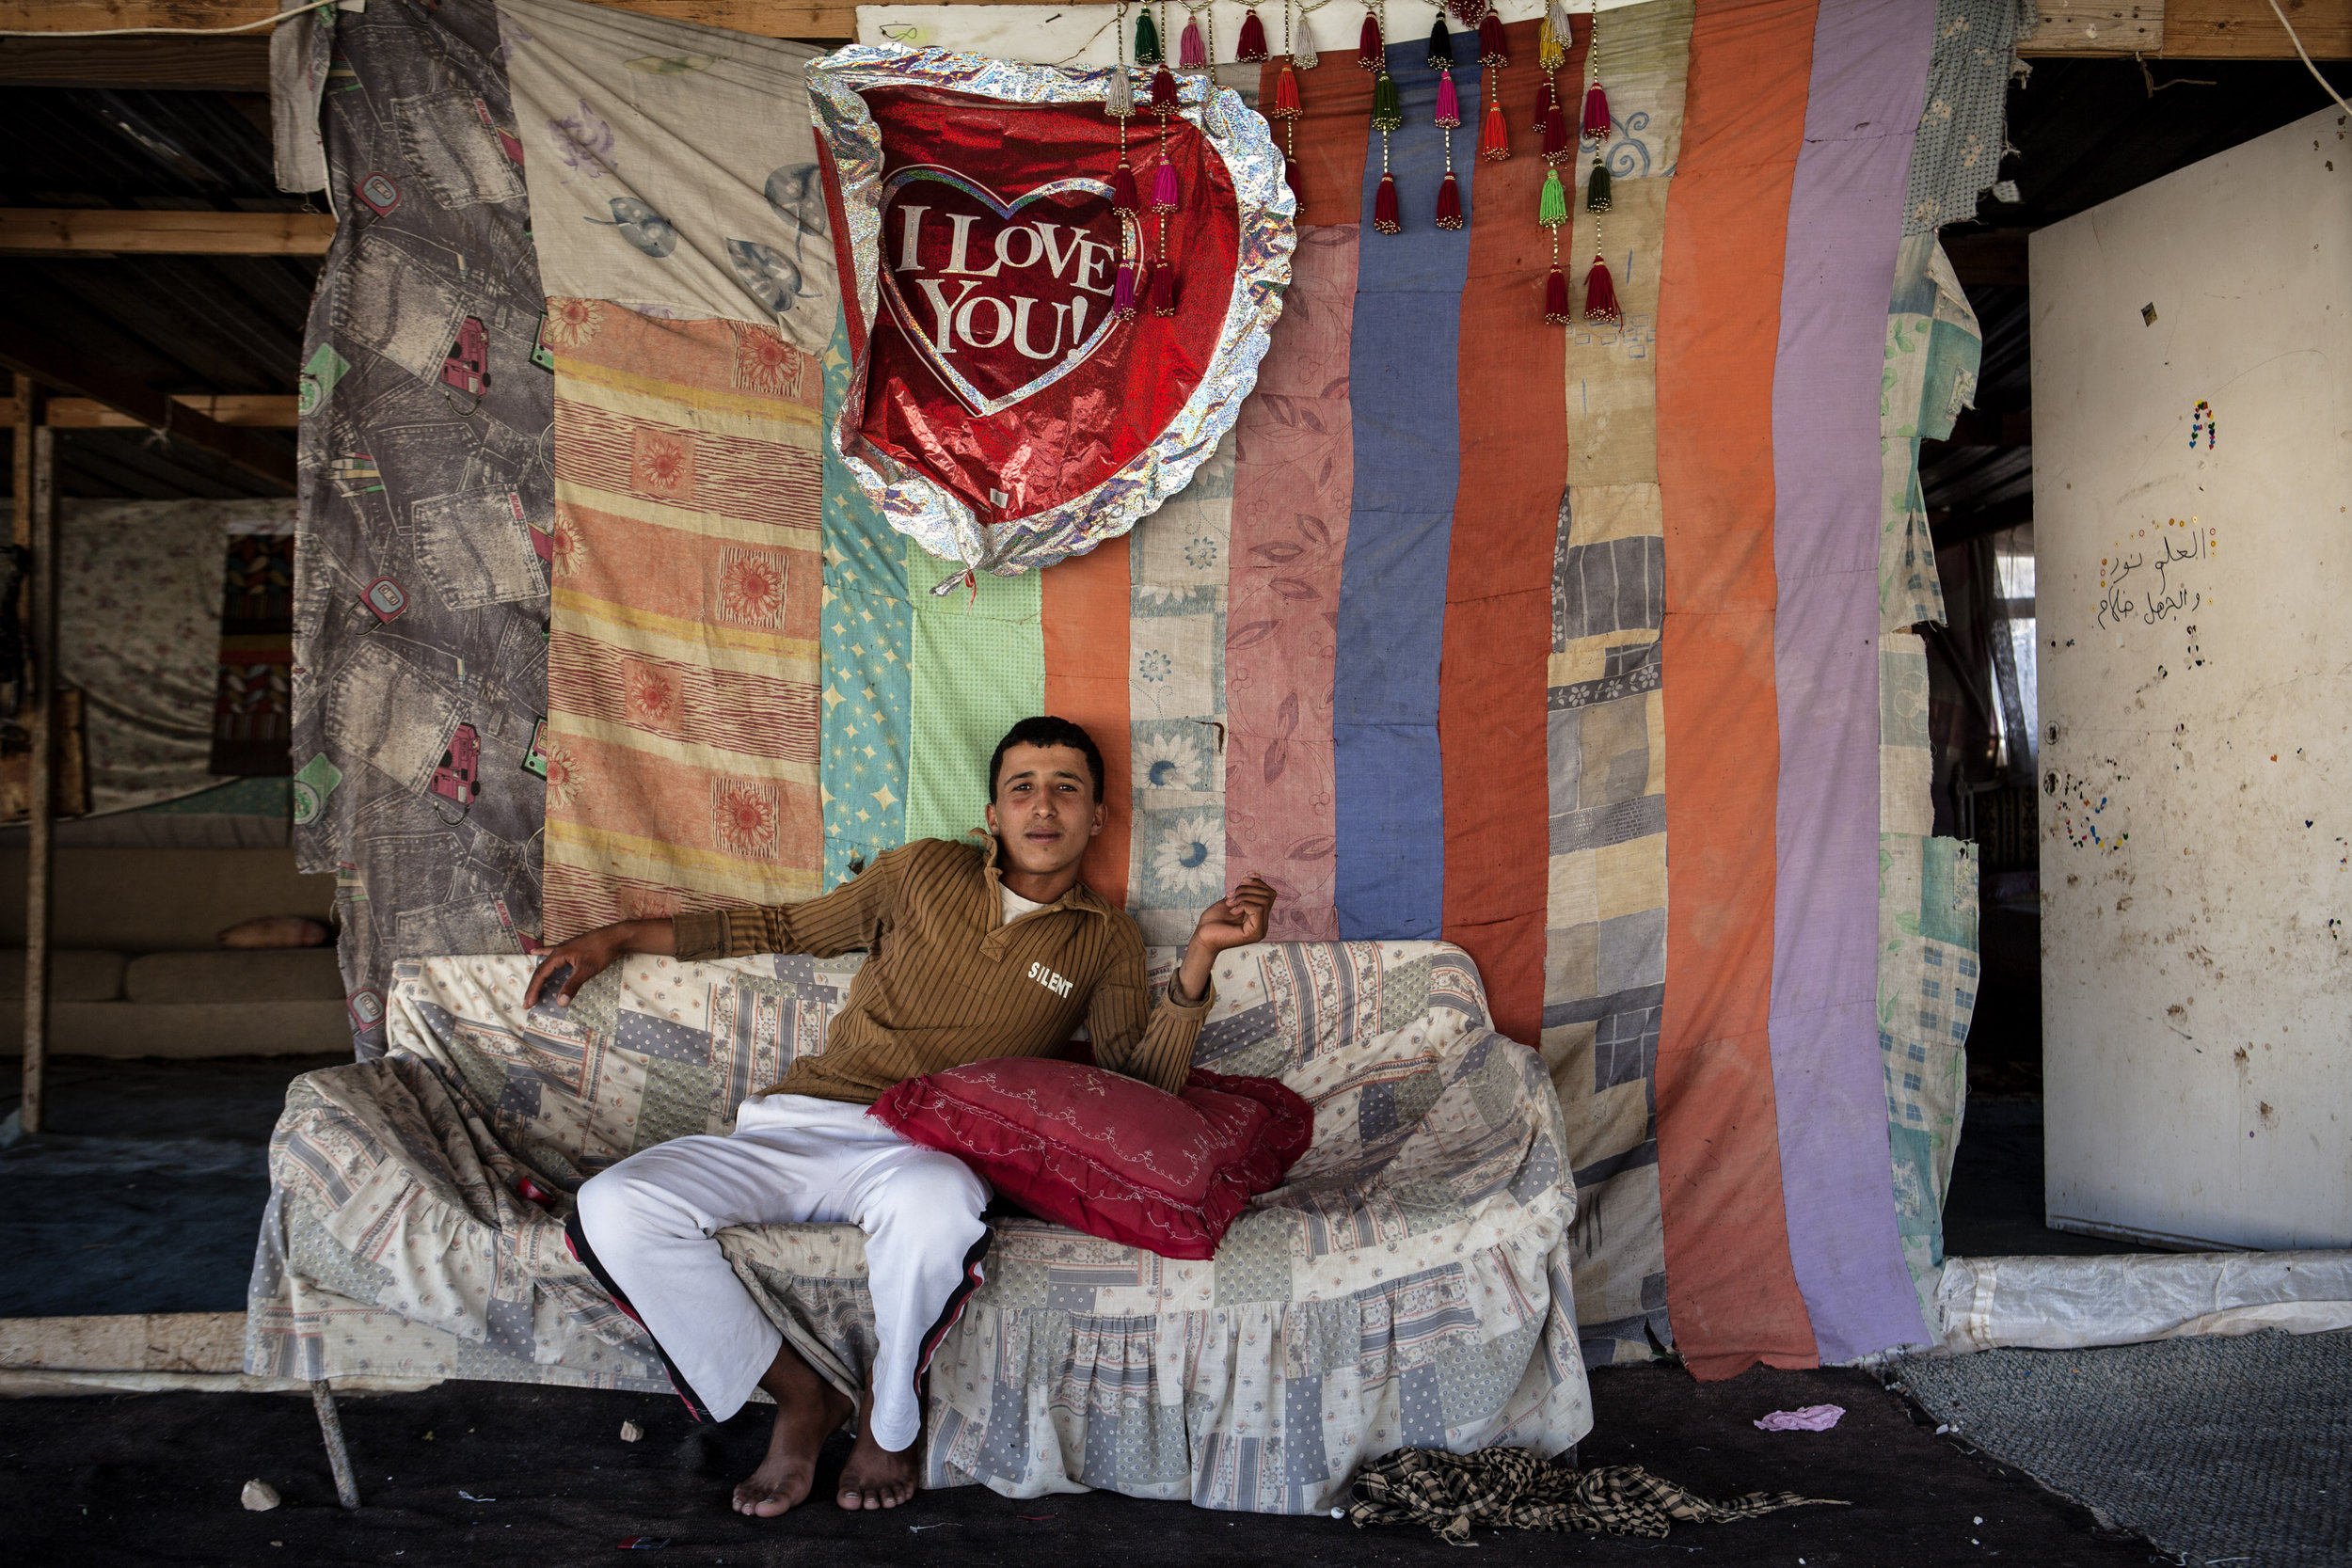 Occupied Palestinian Territories, Khan al-Ahmar, 03 July 2012  Young man from Khan Ahmar relaxes in his home.  A graduate of the only school present in area for the Bedouin, his future plans include working illegally as a builder for various Israeli construction projects.  Tanya Habjouqa / NOOR